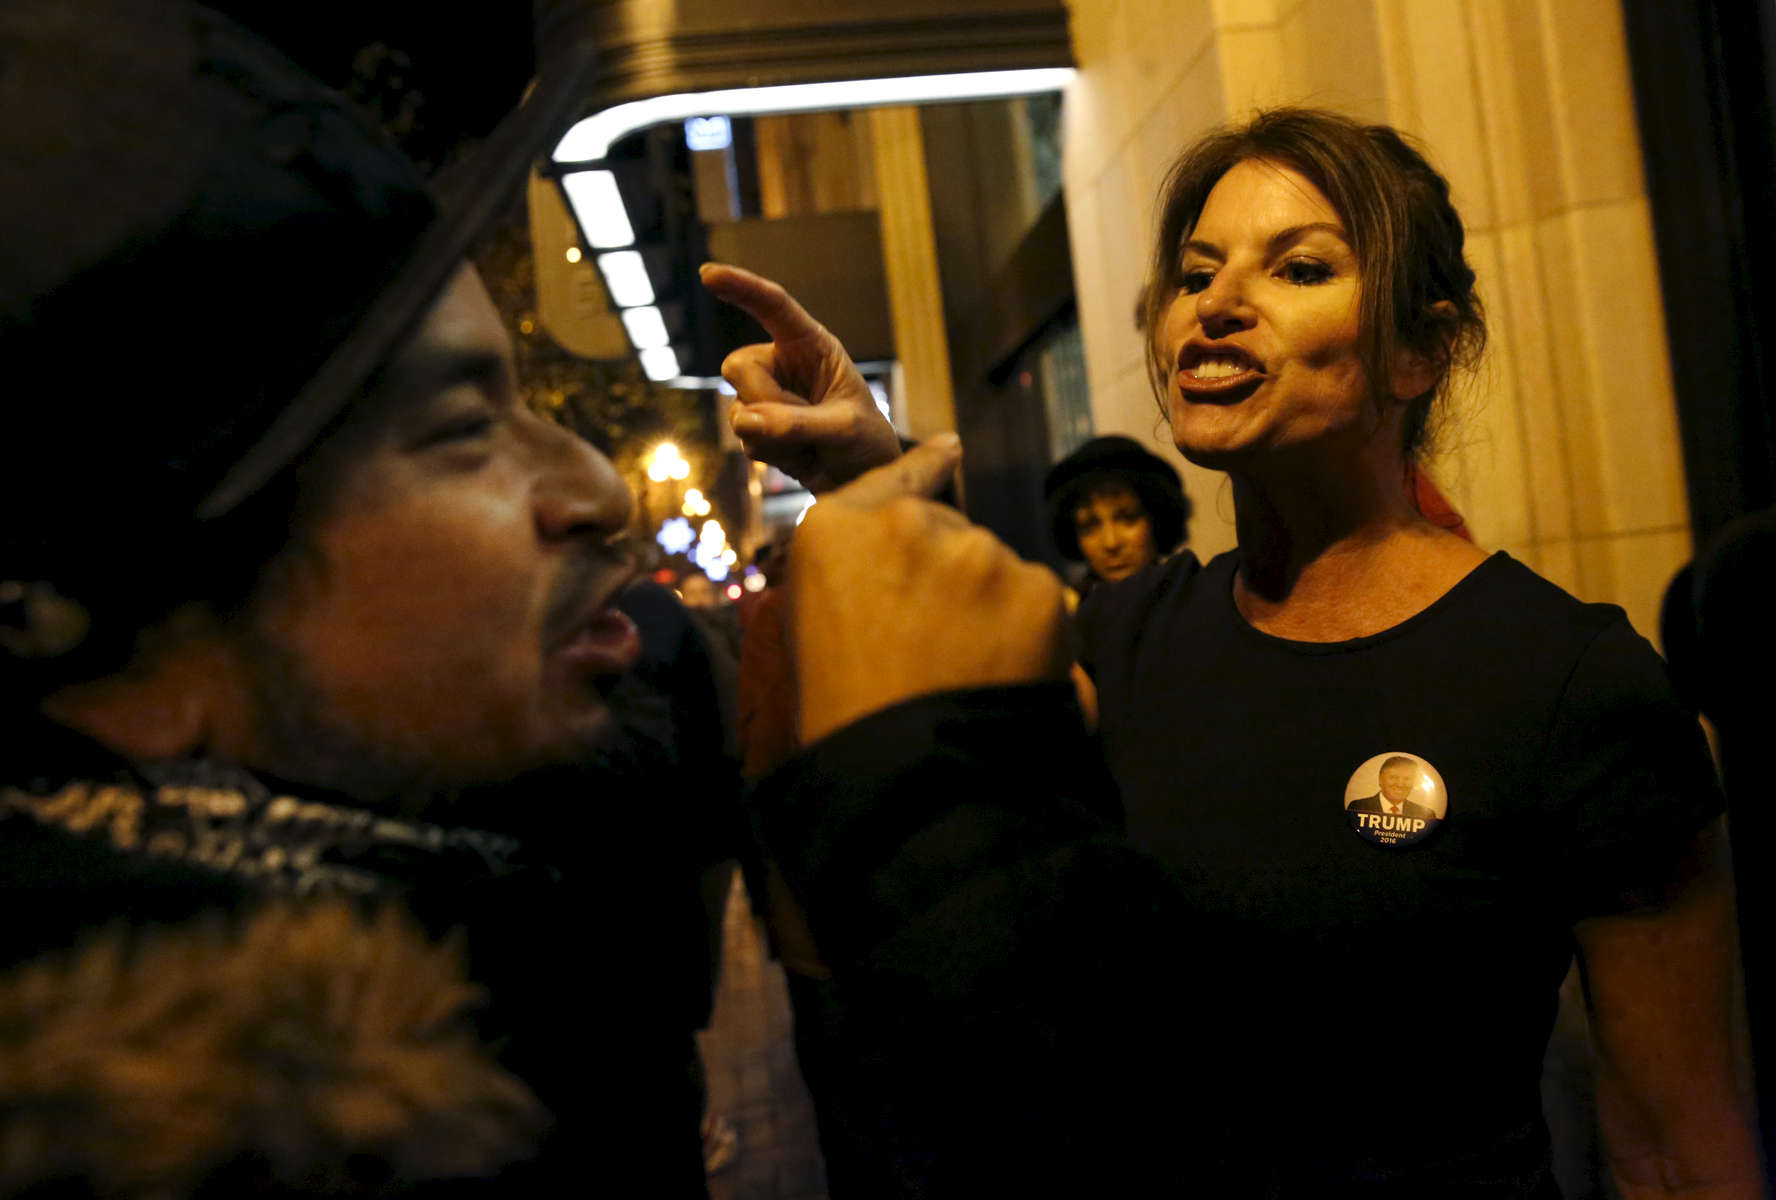 A protester argues with a President Elect Donald Trump supporter after a Republican Presidential candidate Donald J. Trump watch party outside the Twitter building Nov. 8, 2016 in San Francisco, Calif.